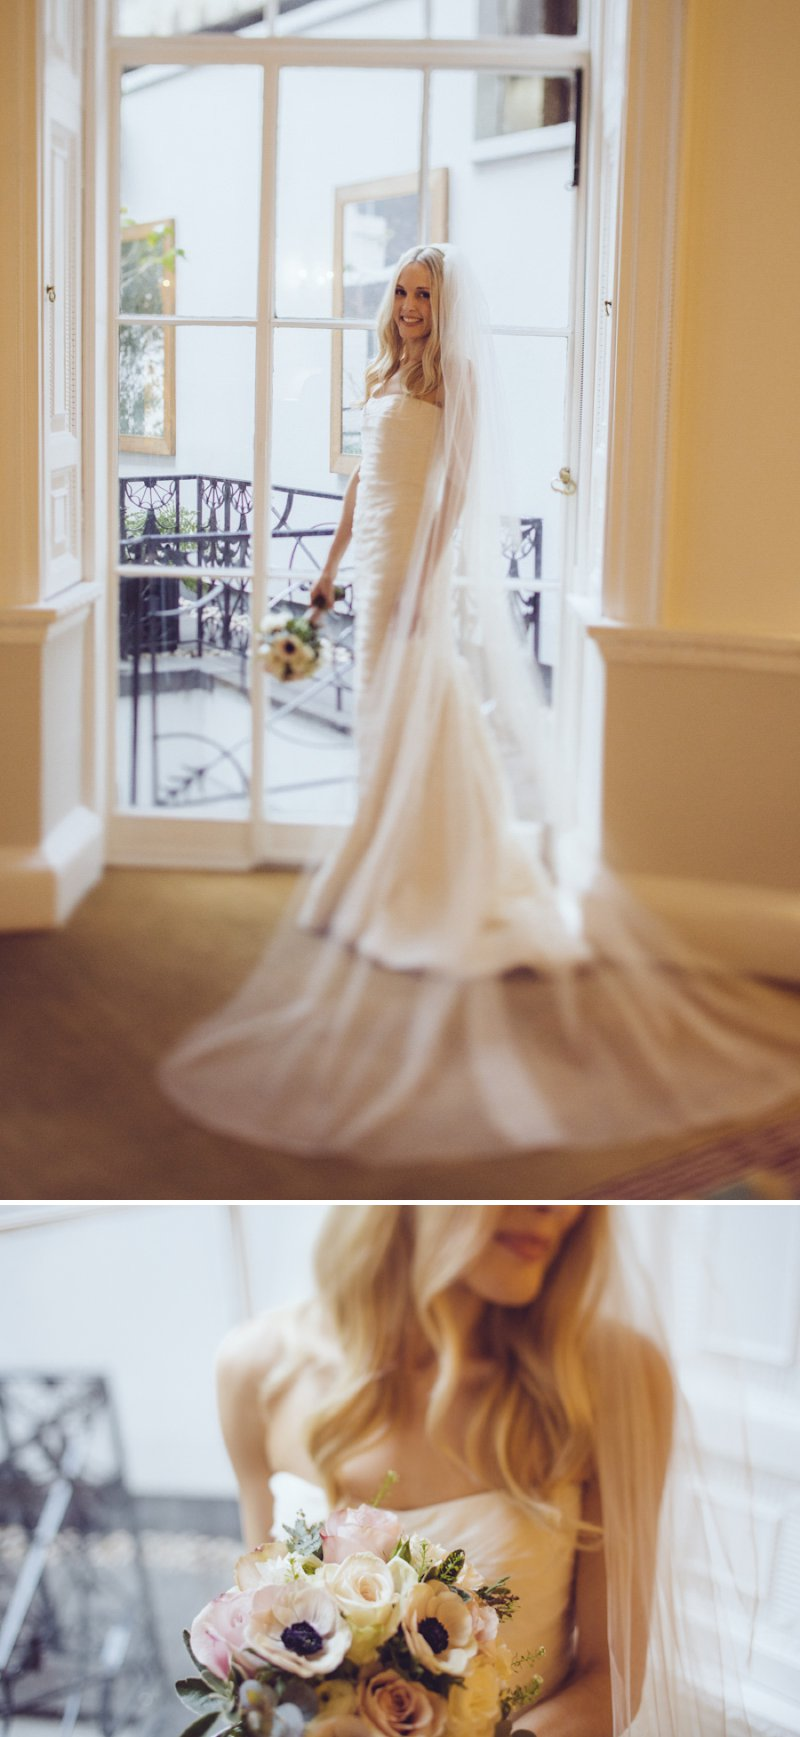 Sophisticated London Wedding At Chandos House With Reception And Dinner At Corrigan's Mayfair With Bride In Peter Langner Gown With Brian Atwood Shoes And Groom In Bespoke Thom Sweeney Suit With Flowers By Scarlet And Violet 5